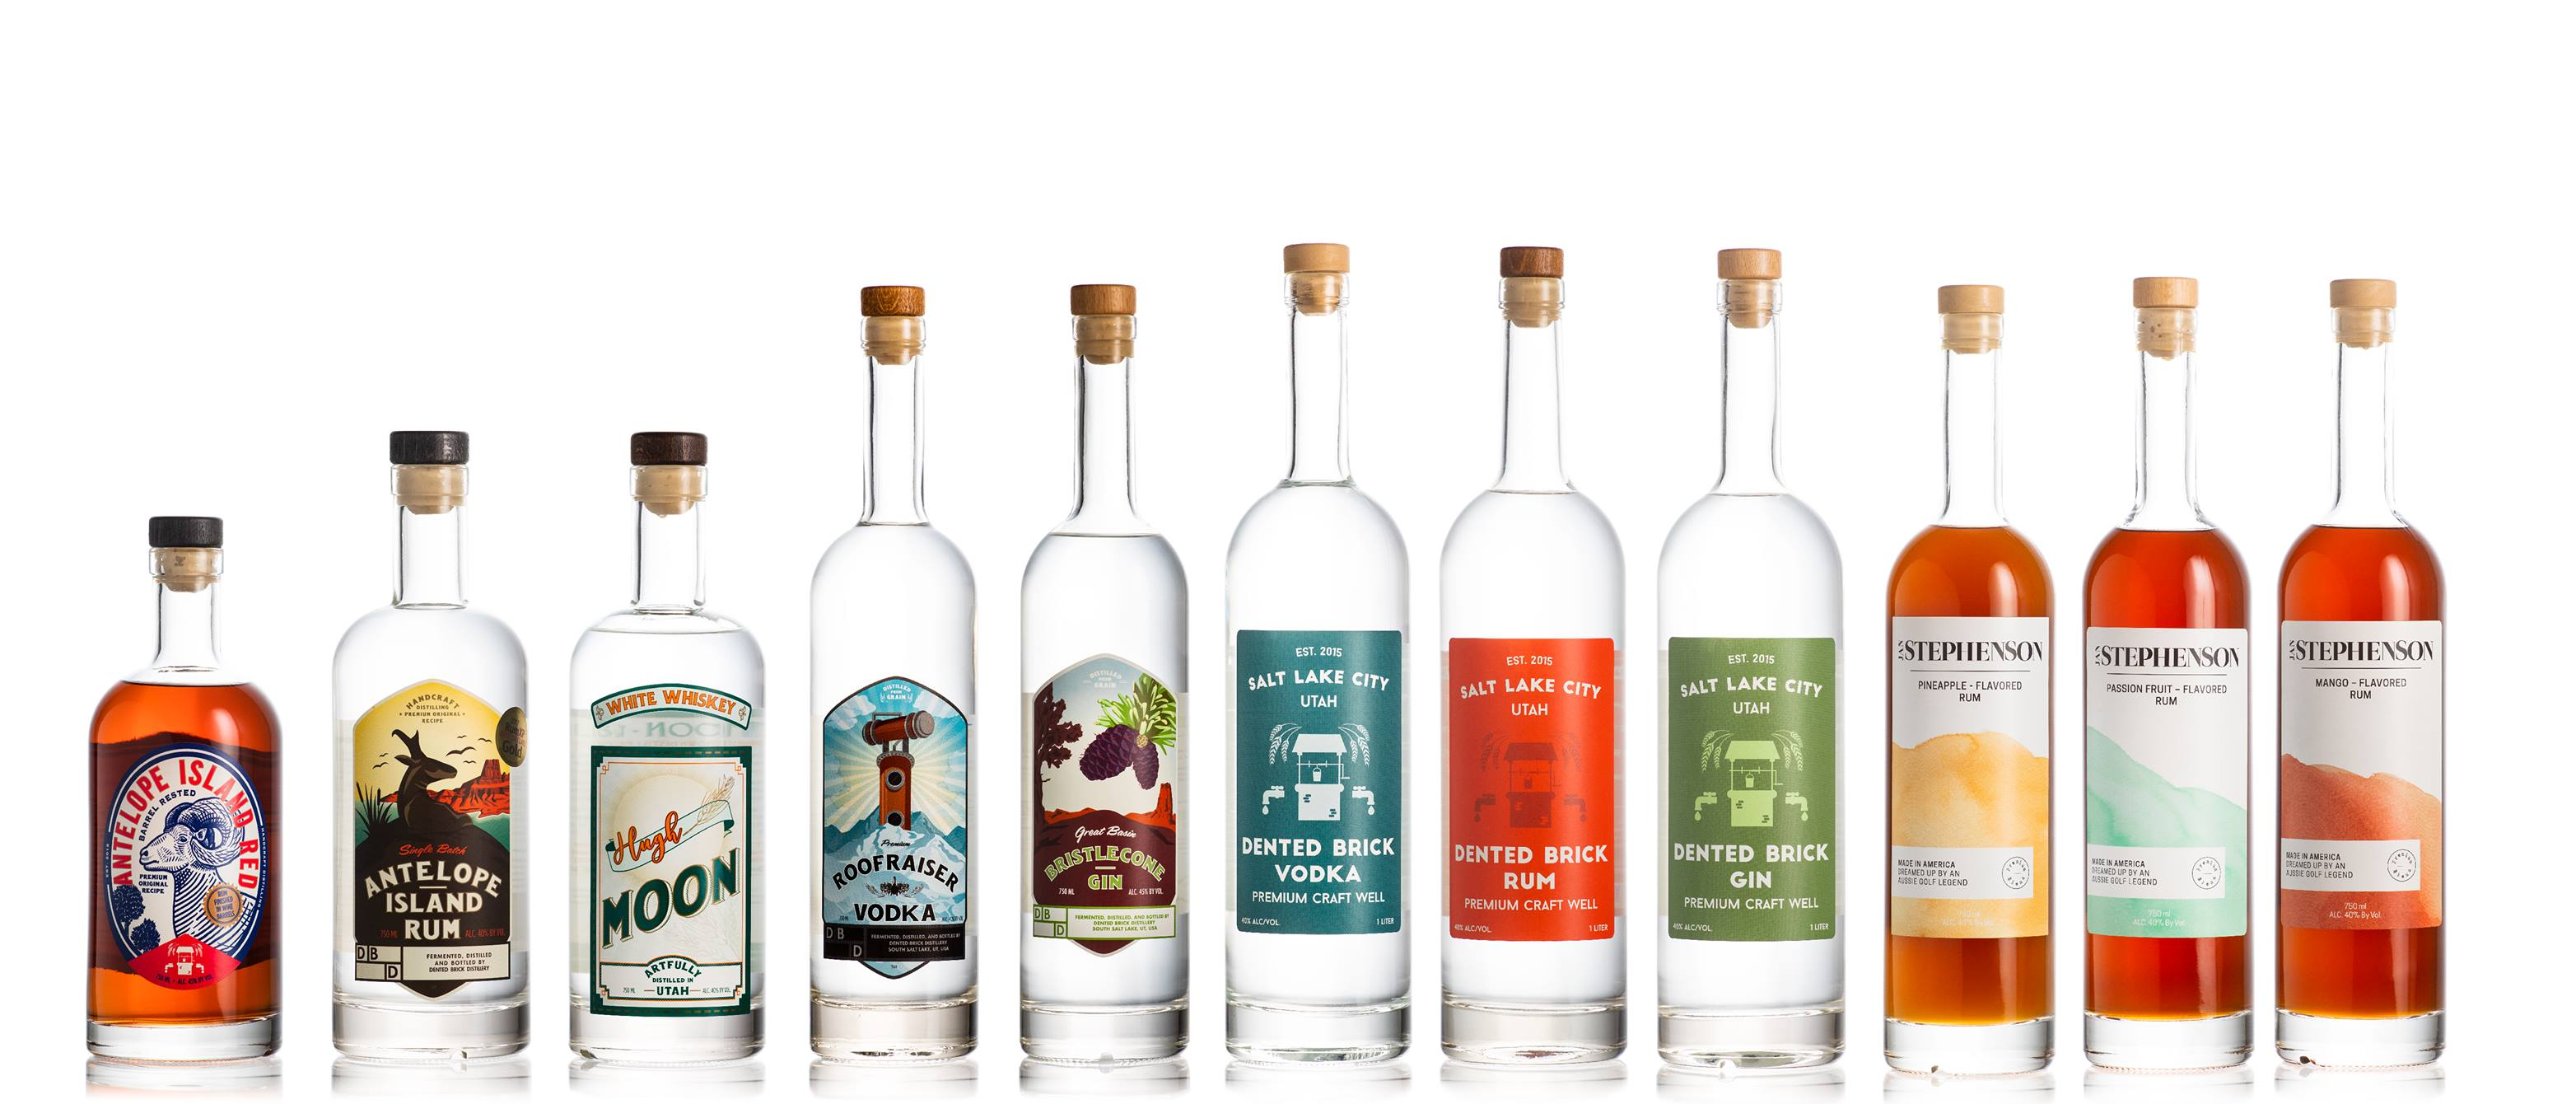 Row of Dented Brick Distillery spirits bottles, including rum, vodka, and gin